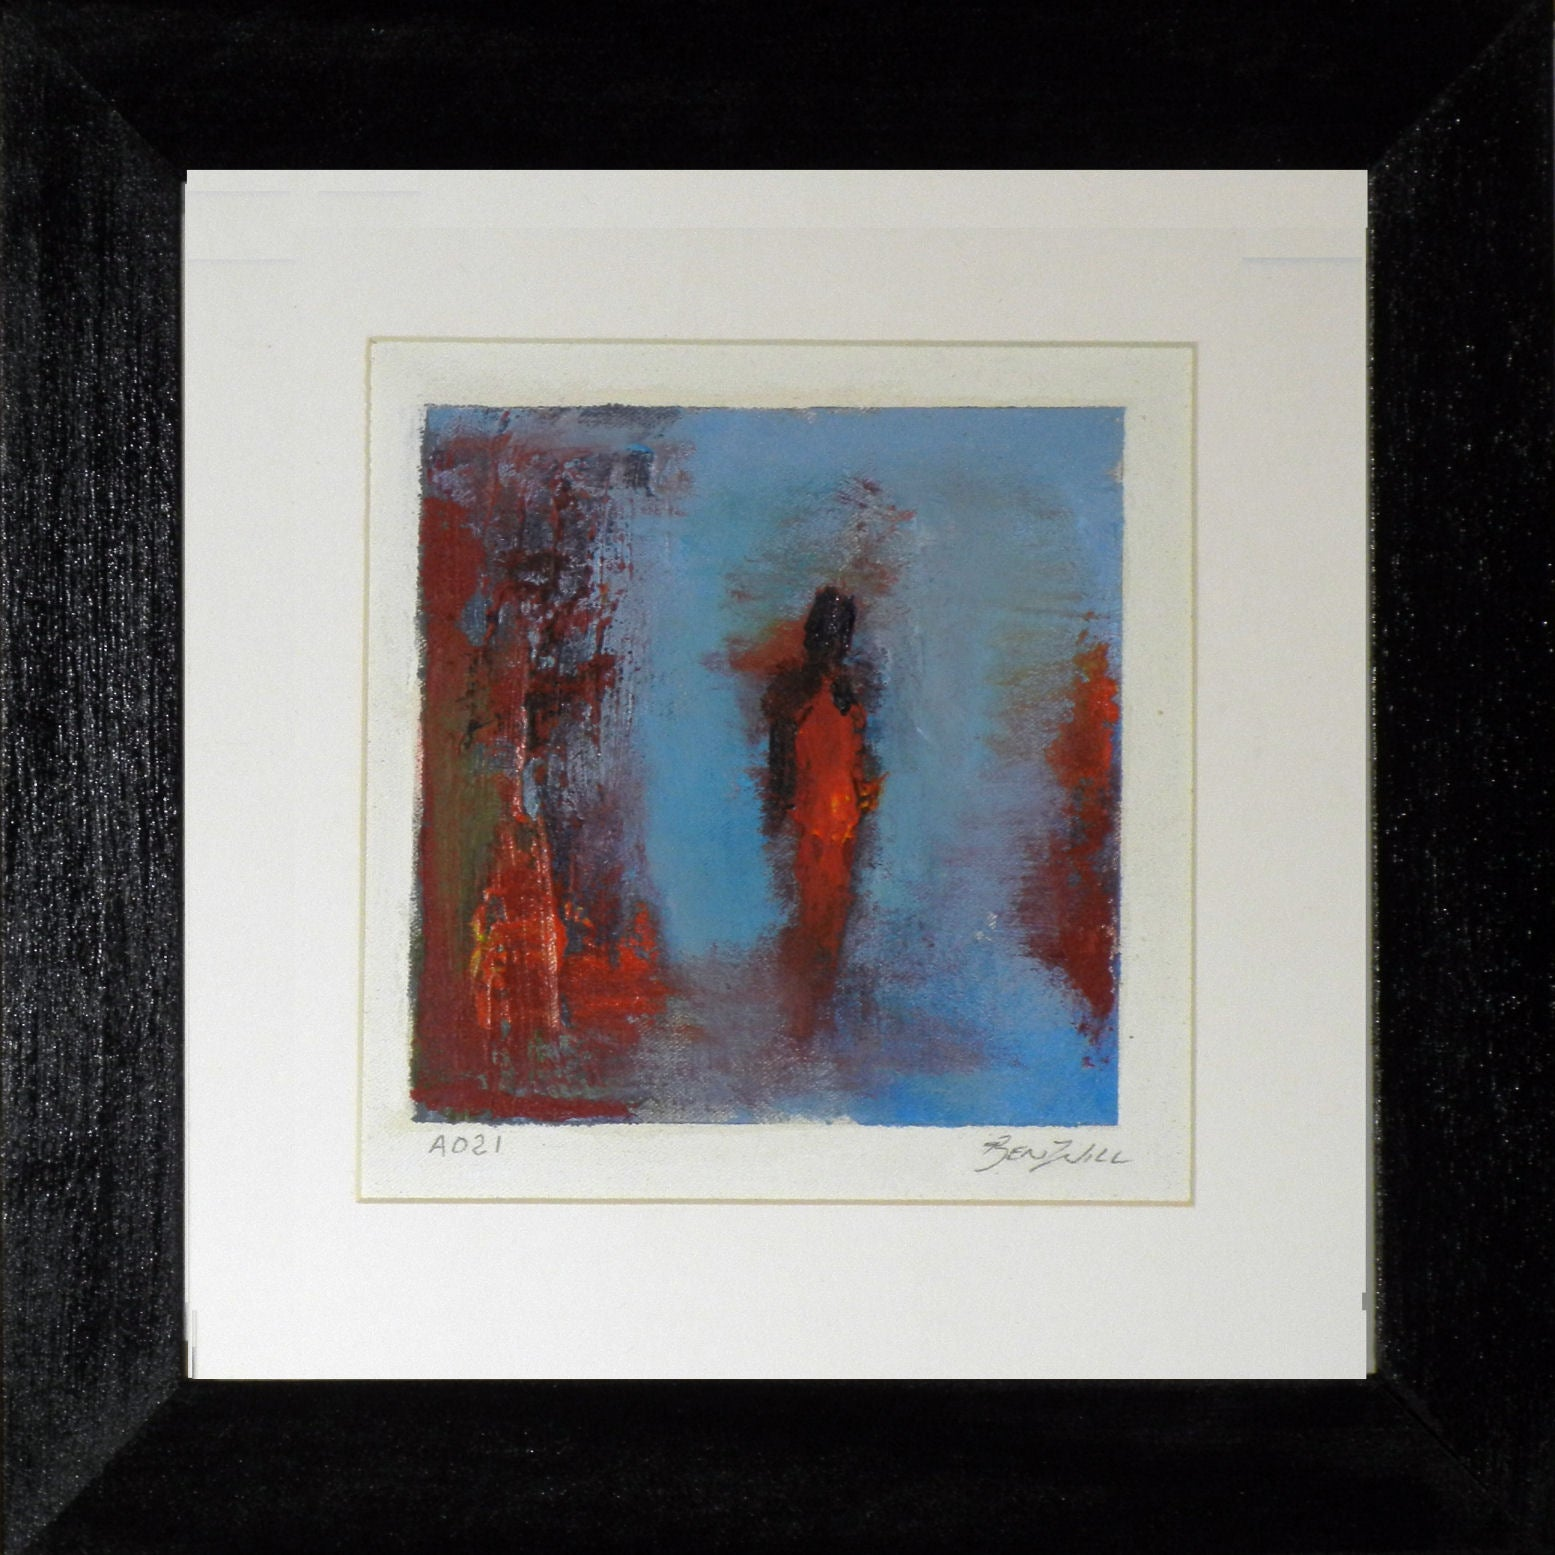 Framed Small Painting DSa021